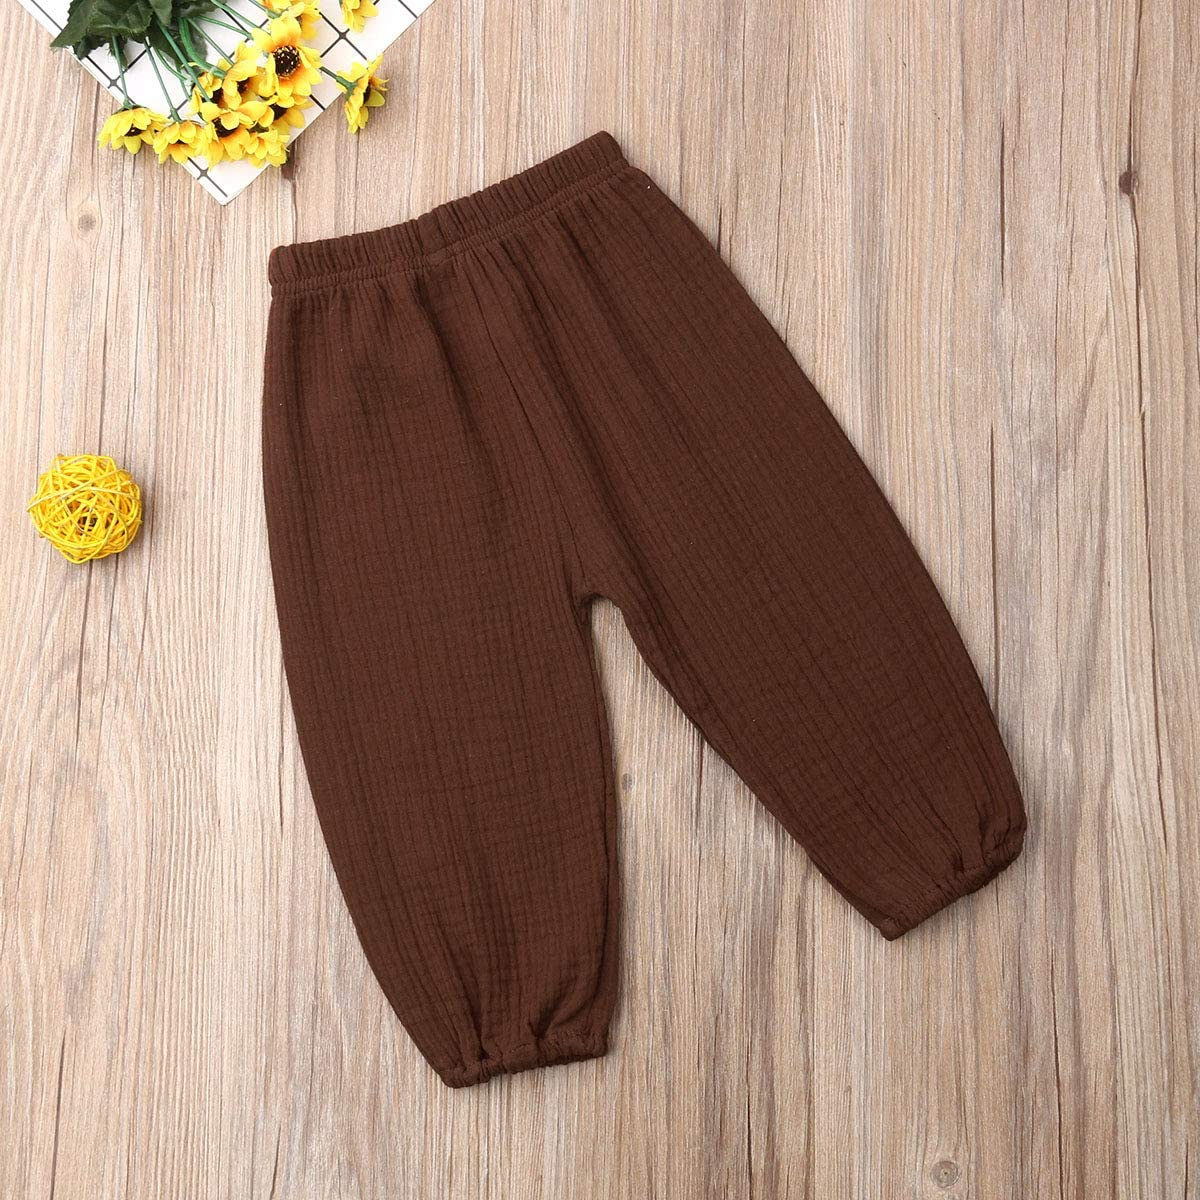 FLYFLYF Baby Cotton Linen Pants Toddler Baby Boy Girl Casual Eelastic Harem Pants Summer Bloomers Clothes